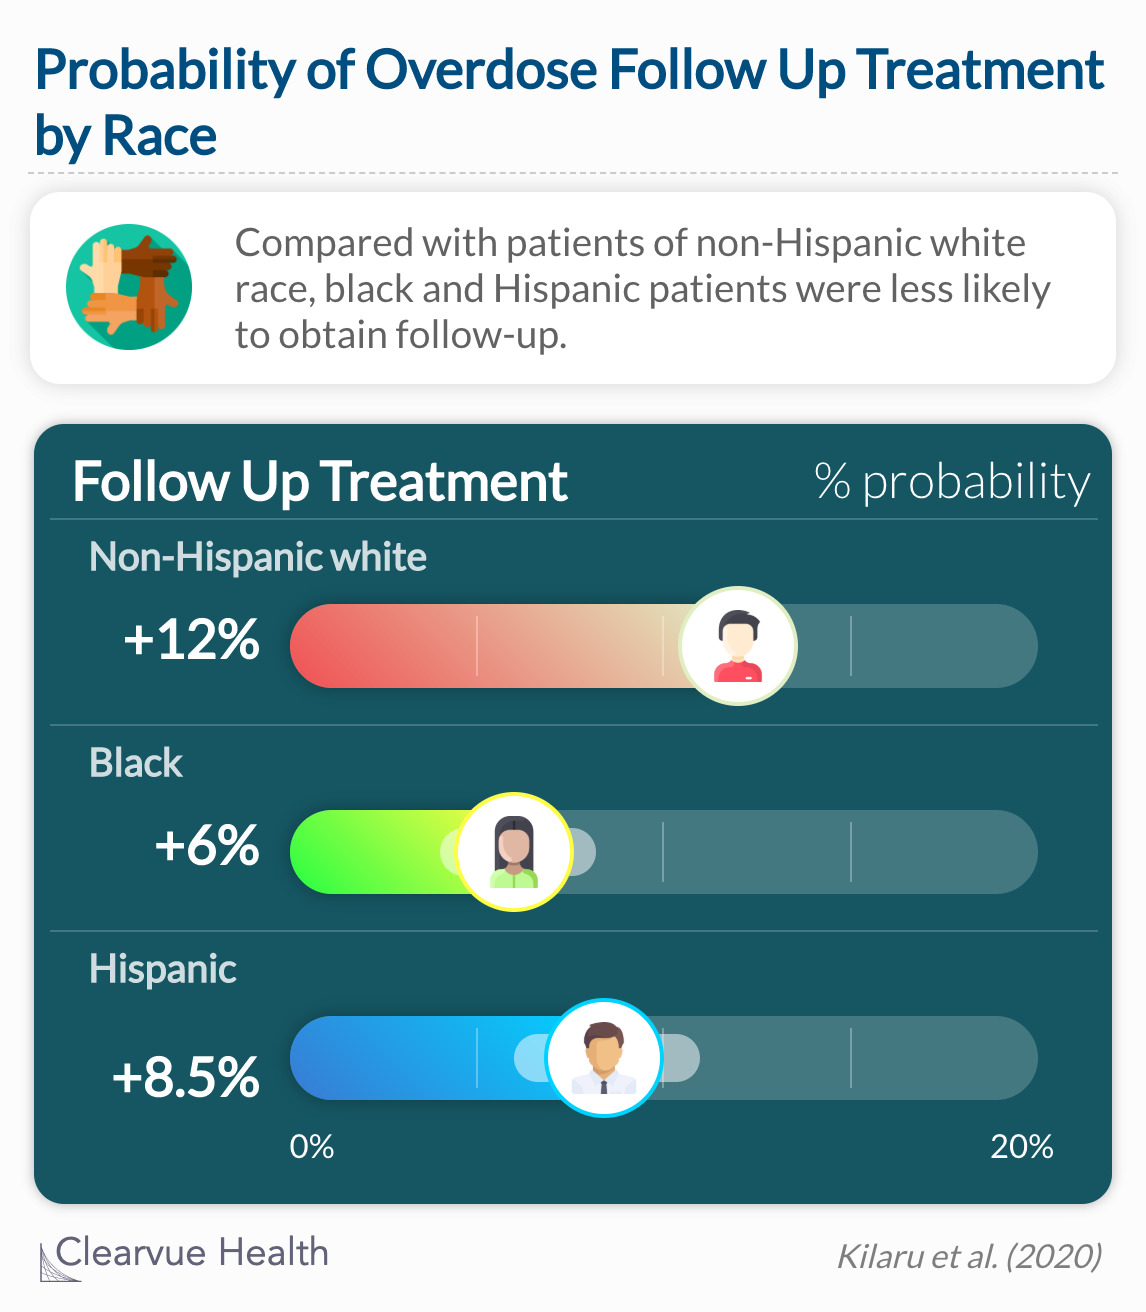 Compared with patients of non-Hispanic white race, black and Hispanic patients were less likely to obtain follow-up.